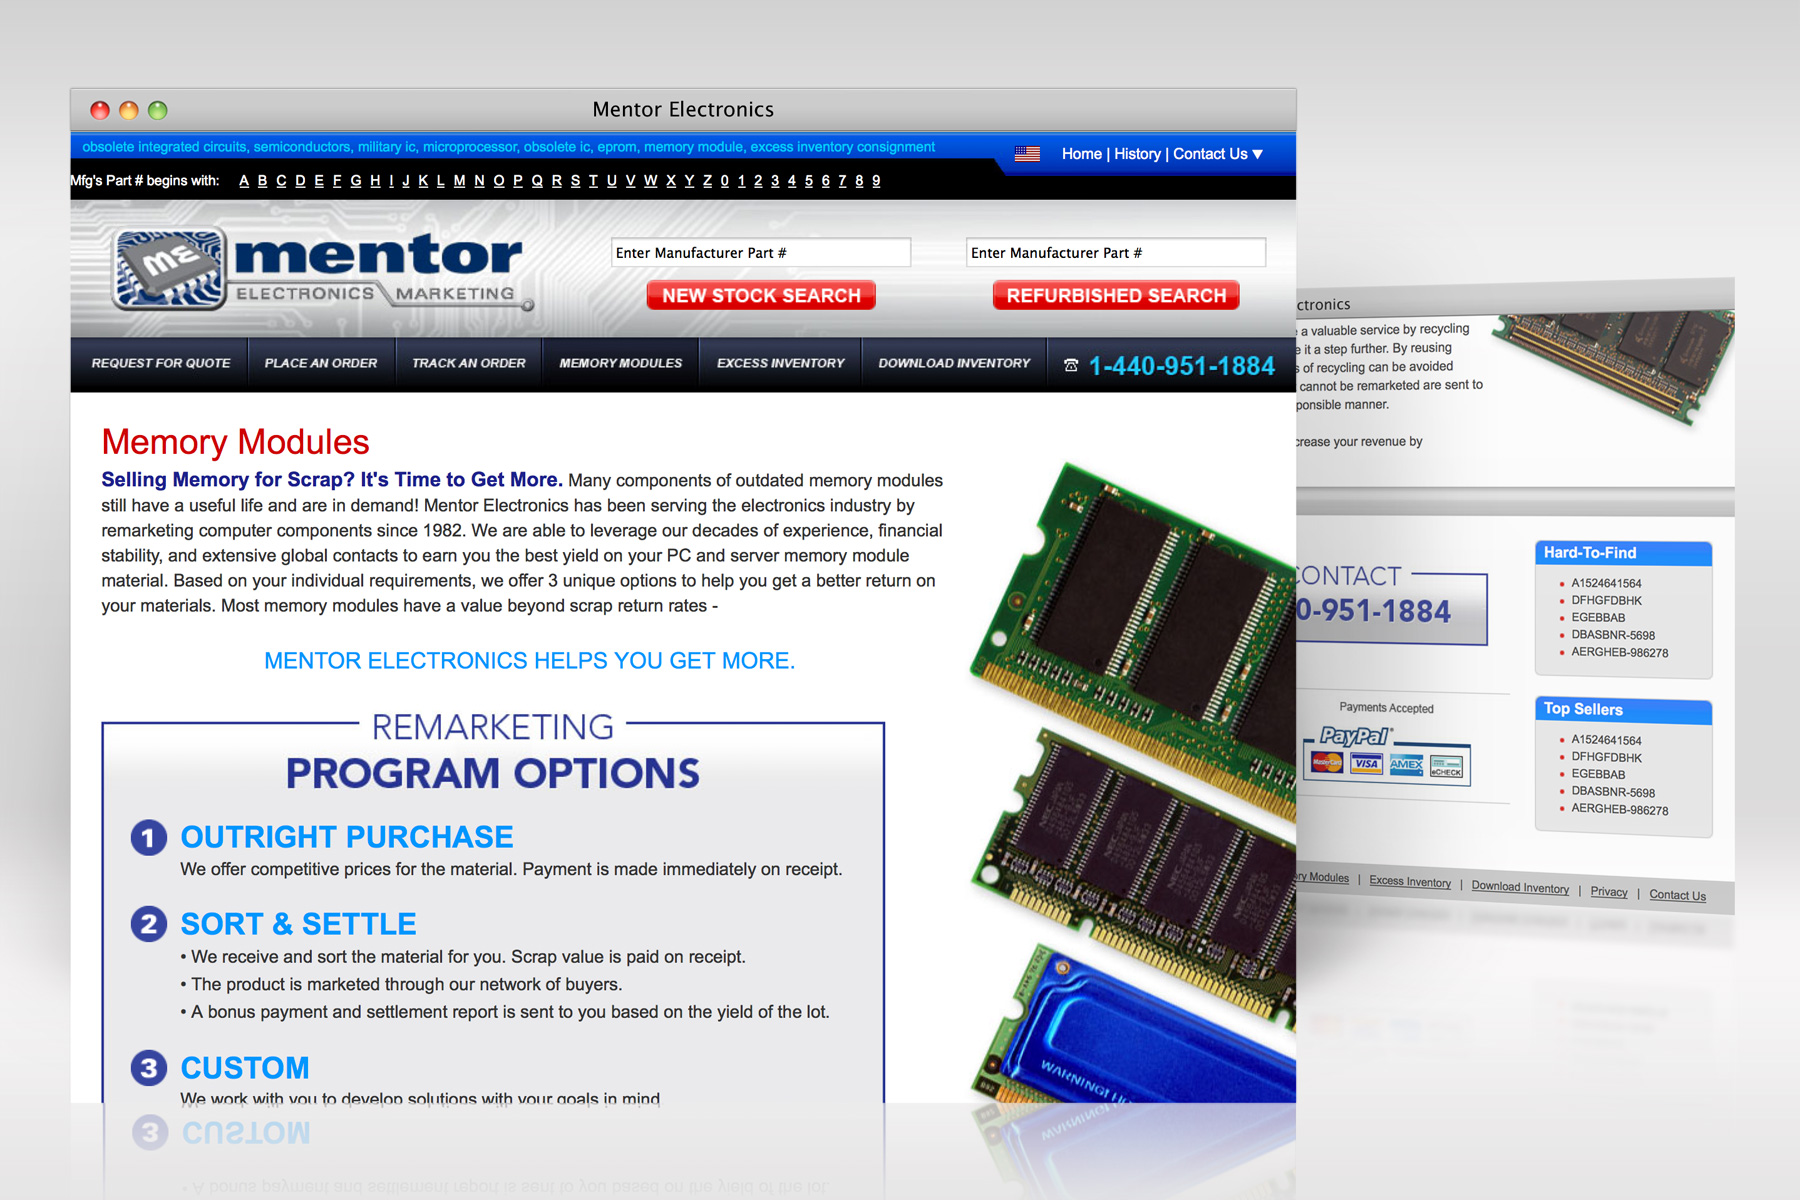 Mentor Electronics web design 2